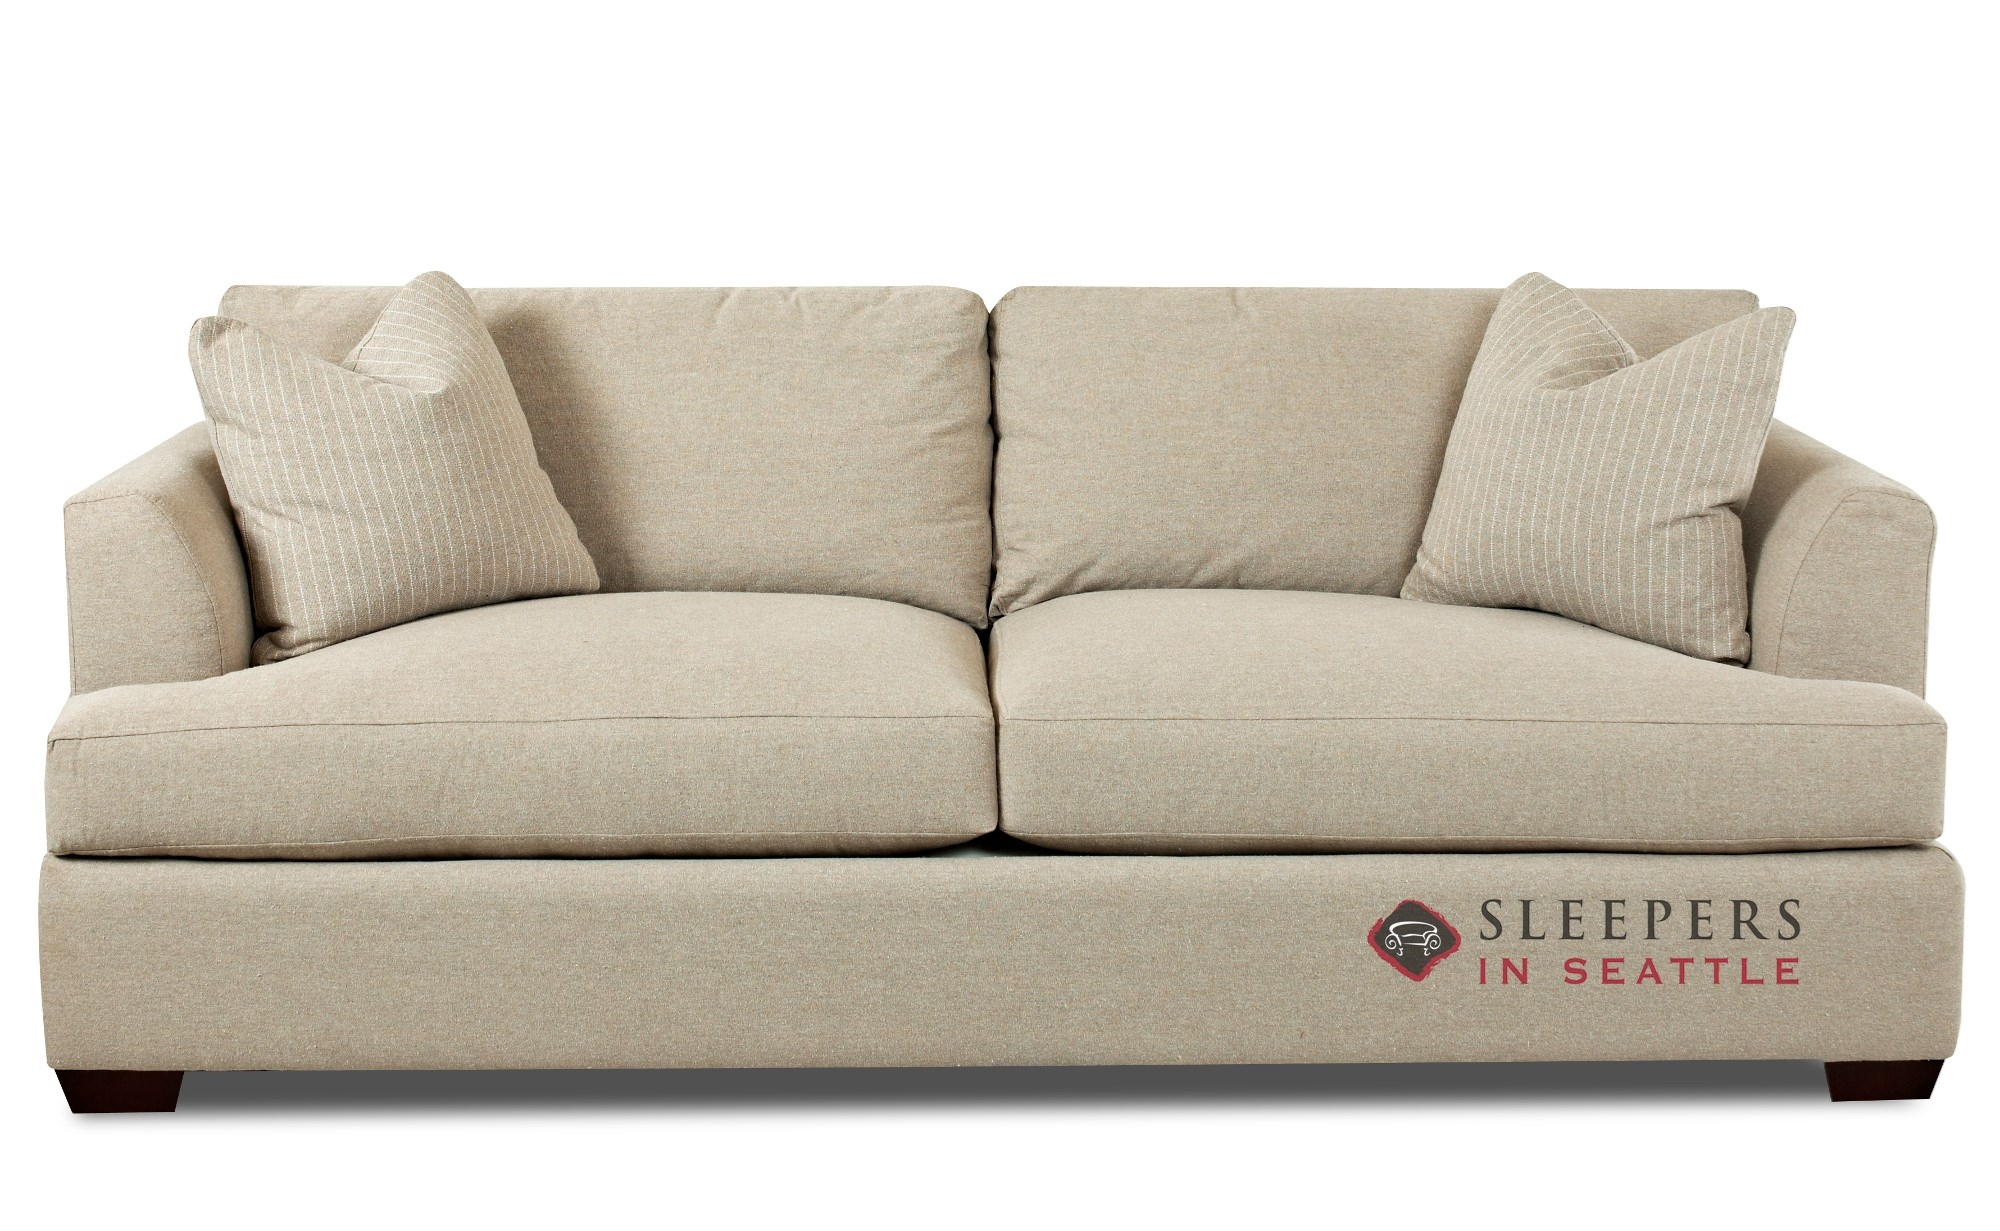 Sleeper Sofa.Savvy Berkeley Queen Sleeper Sofa With Down Feather Seating